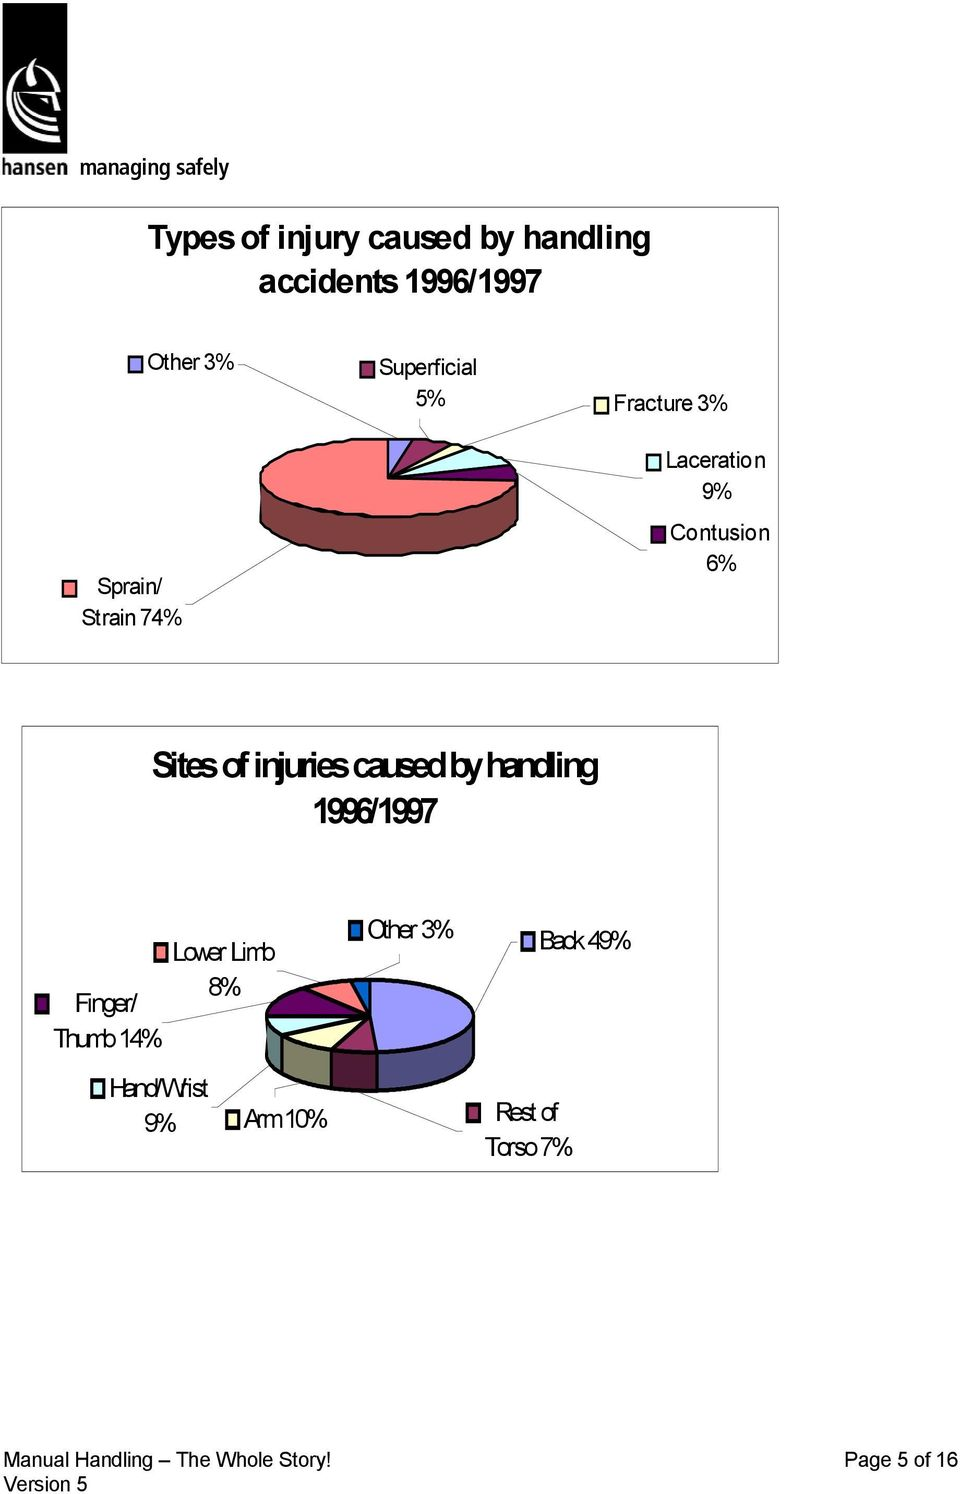 caused by handling 1996/1997 Finger/ Thumb 14% Lower Limb 8% Hand